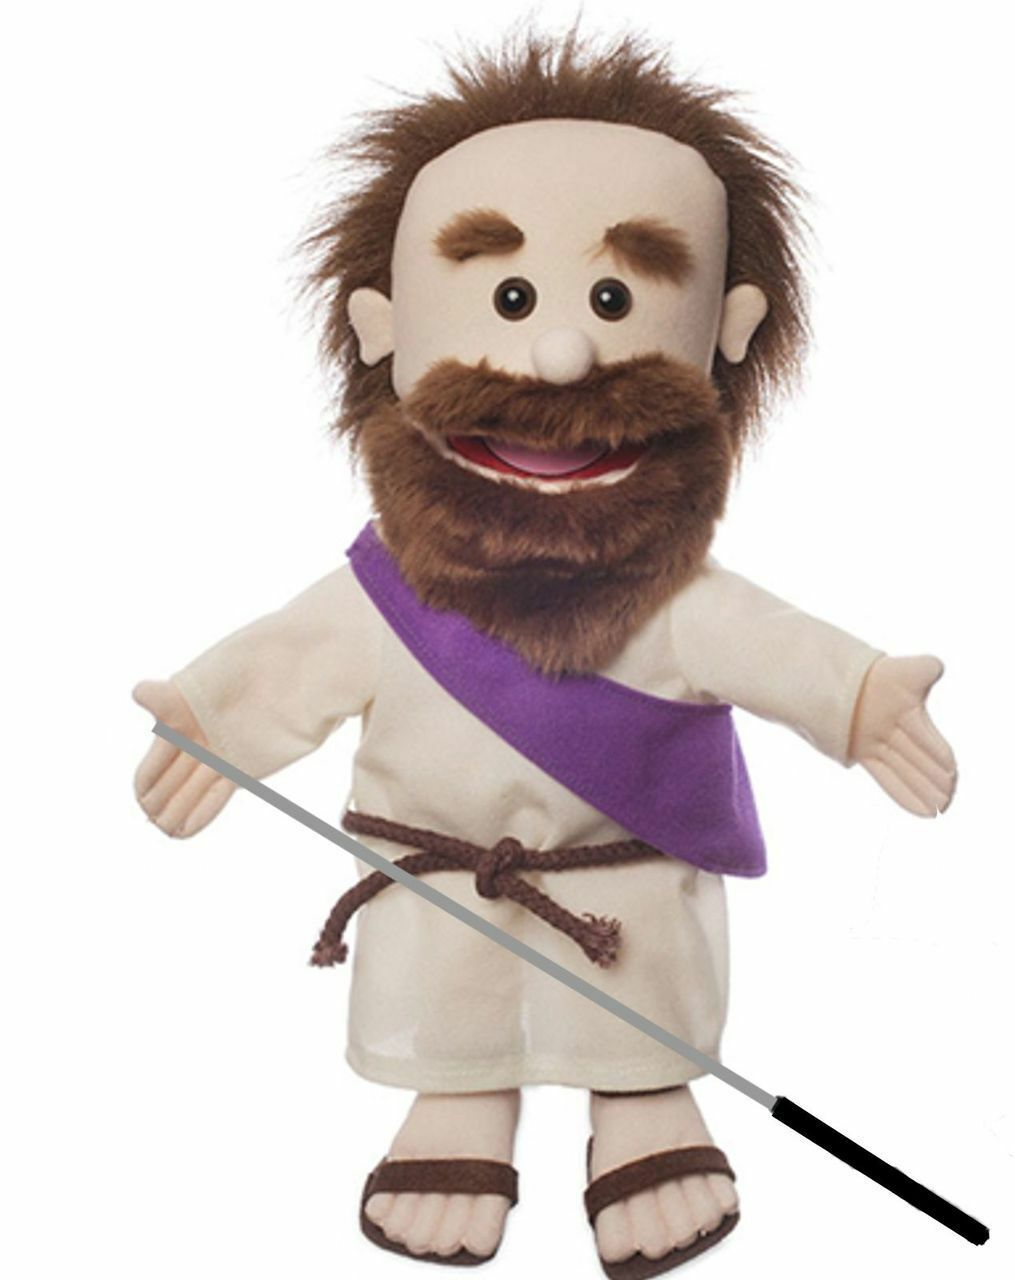 Silly Puppets Jesus(Biblical) Glove Puppet Arm Bundle 14 inch with Arm Puppet Rod 6f42e7